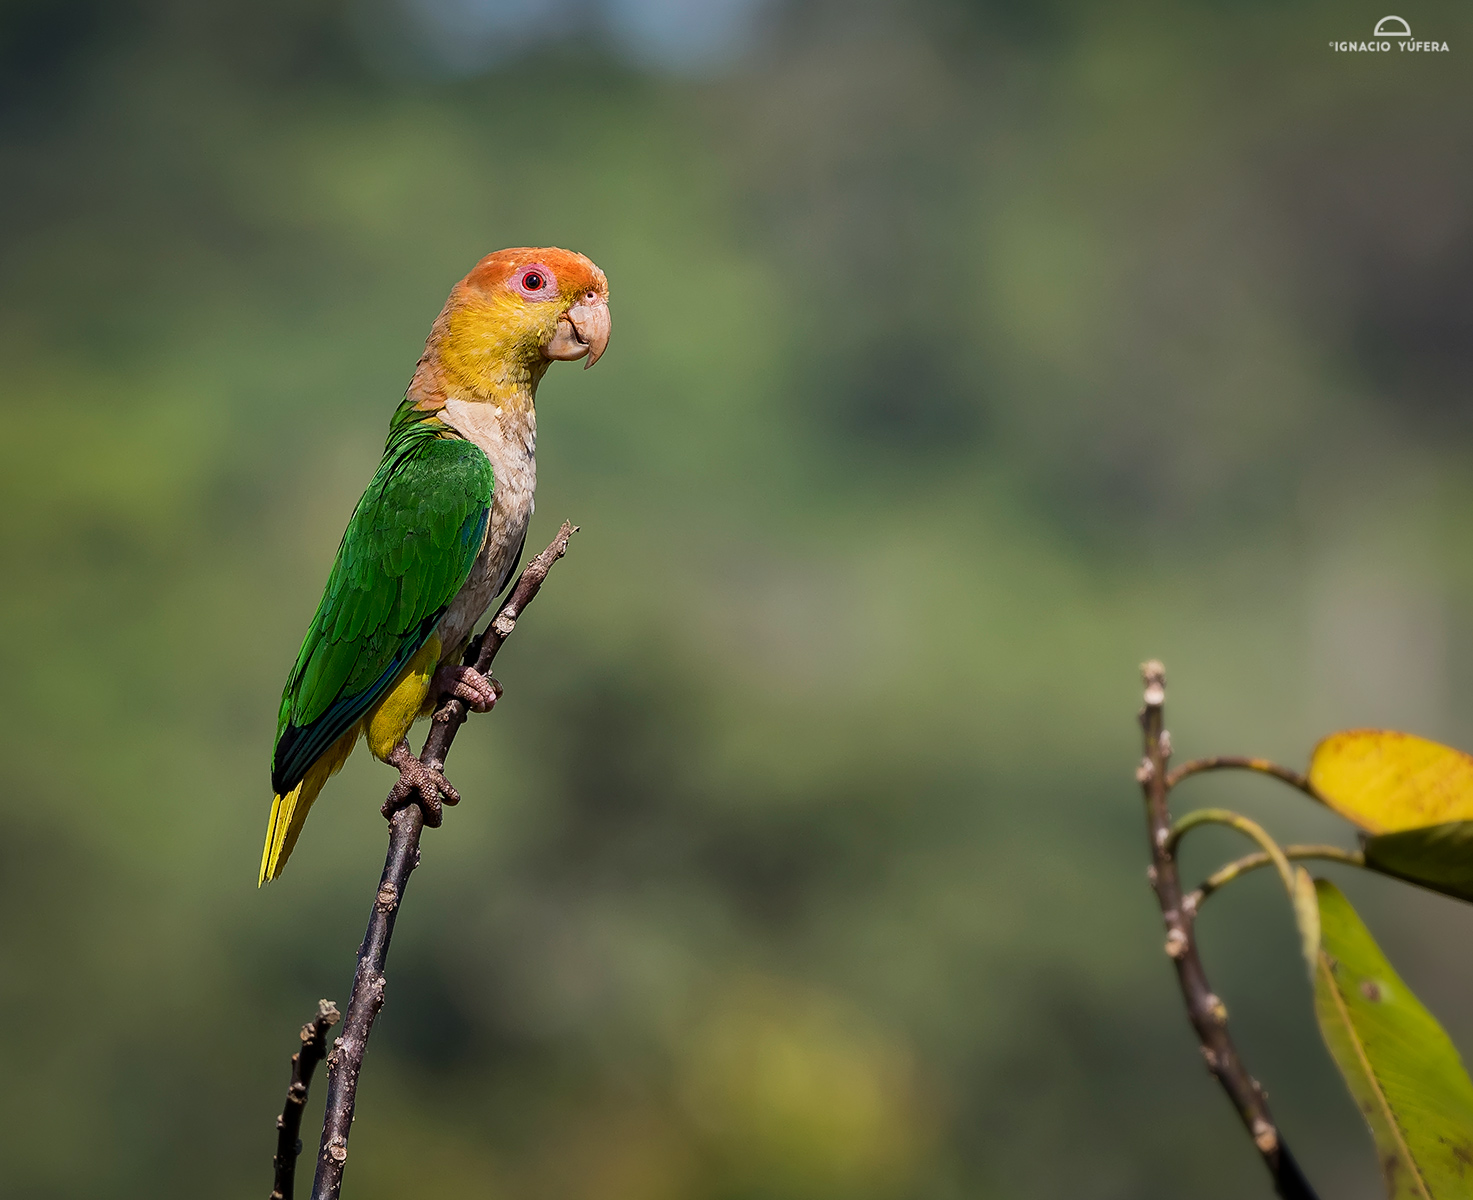 Yellow-tailed parrots (Pionites xanthurus)